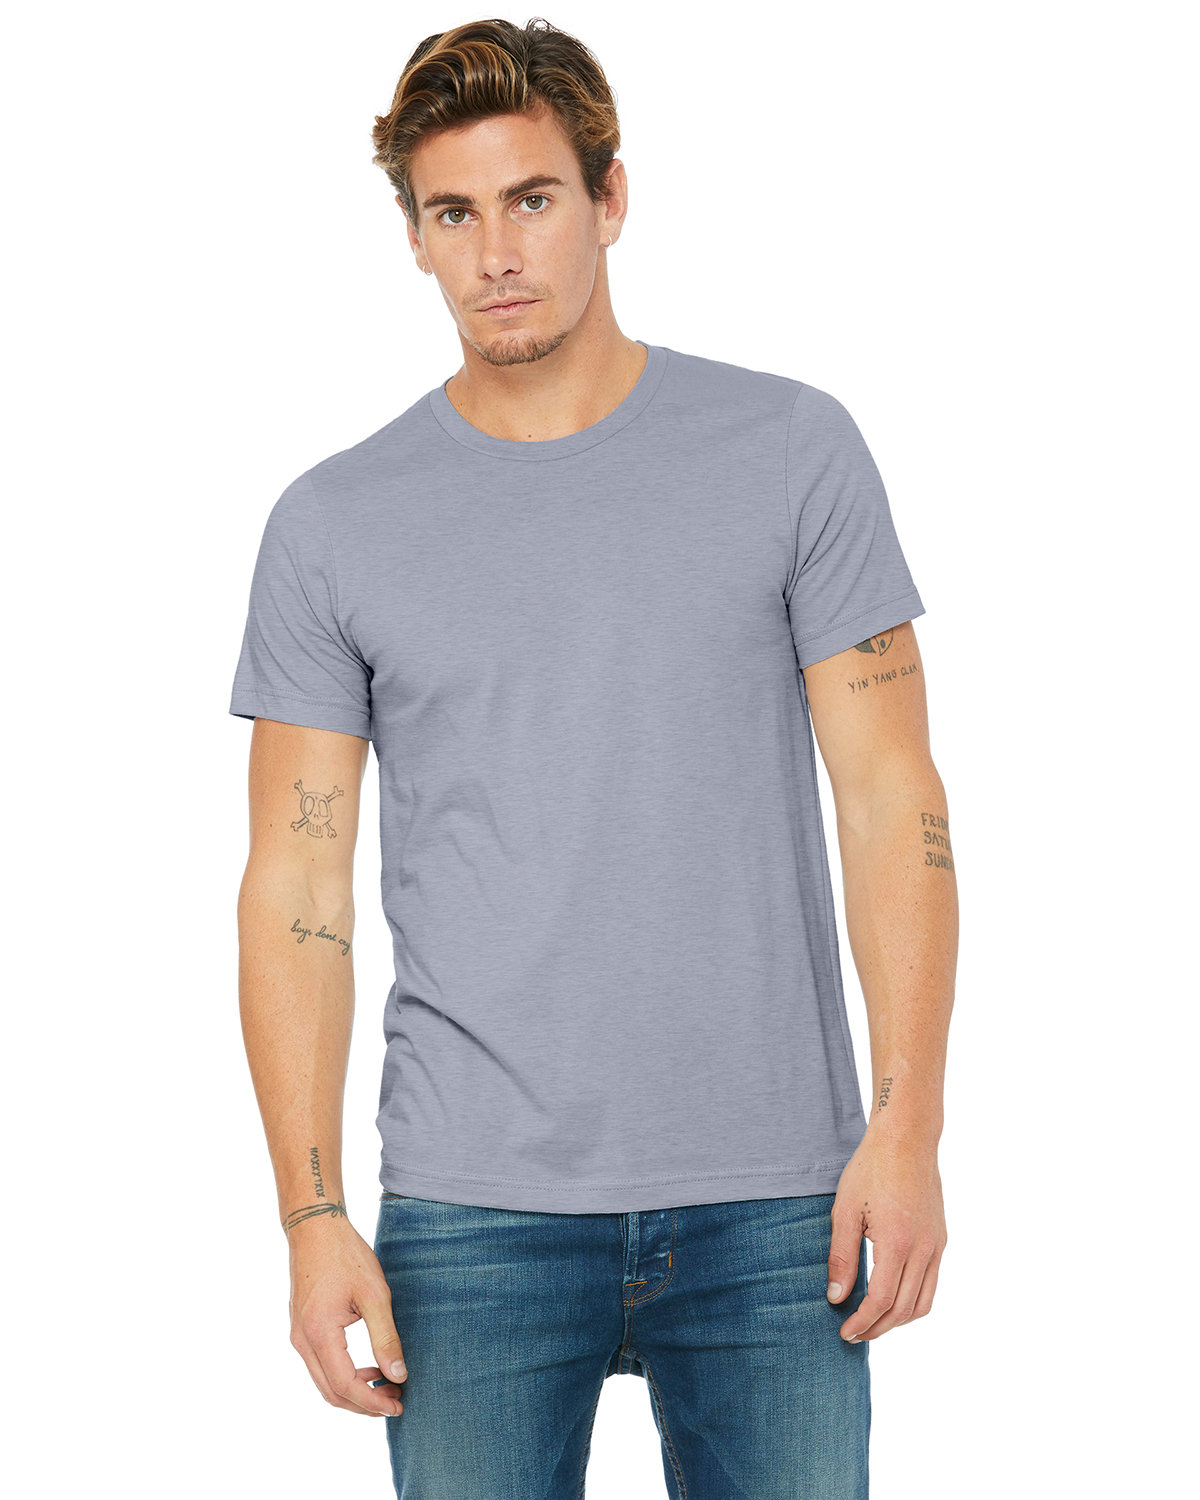 Bella + Canvas Unisex Heather CVC T-Shirt HEATHER BLUE